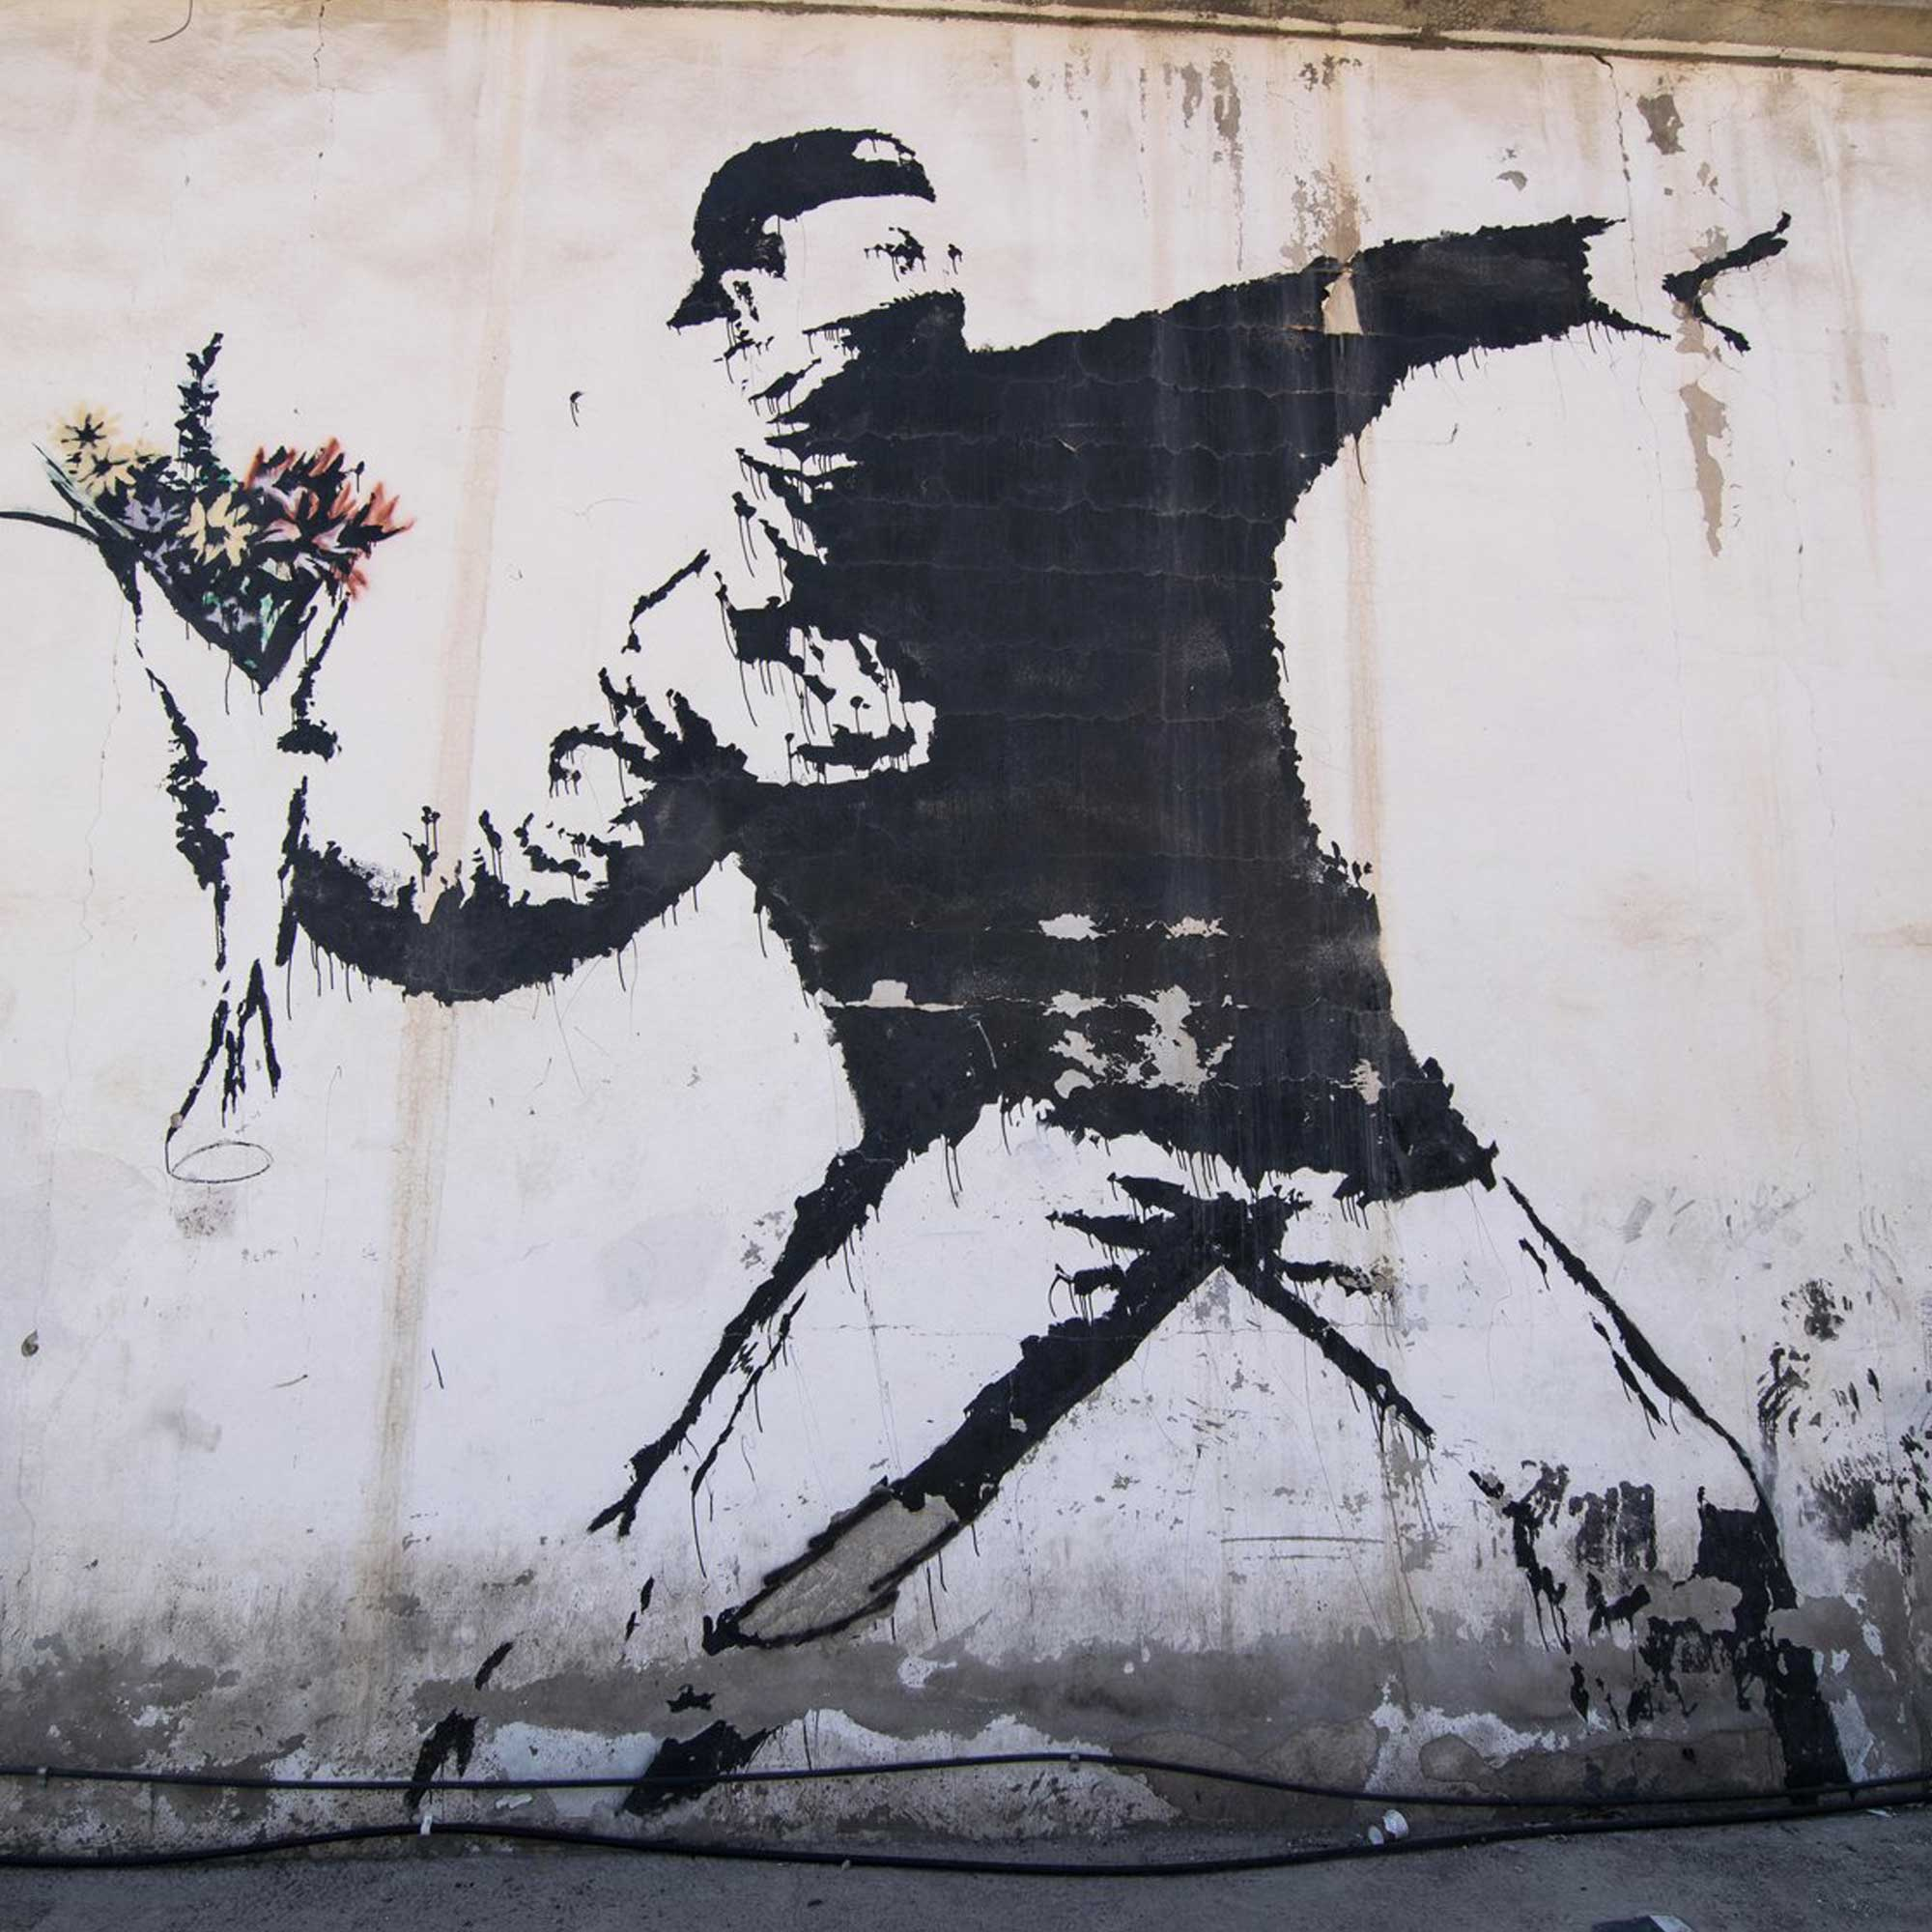 A new exhibition of Banksy in Brussels!